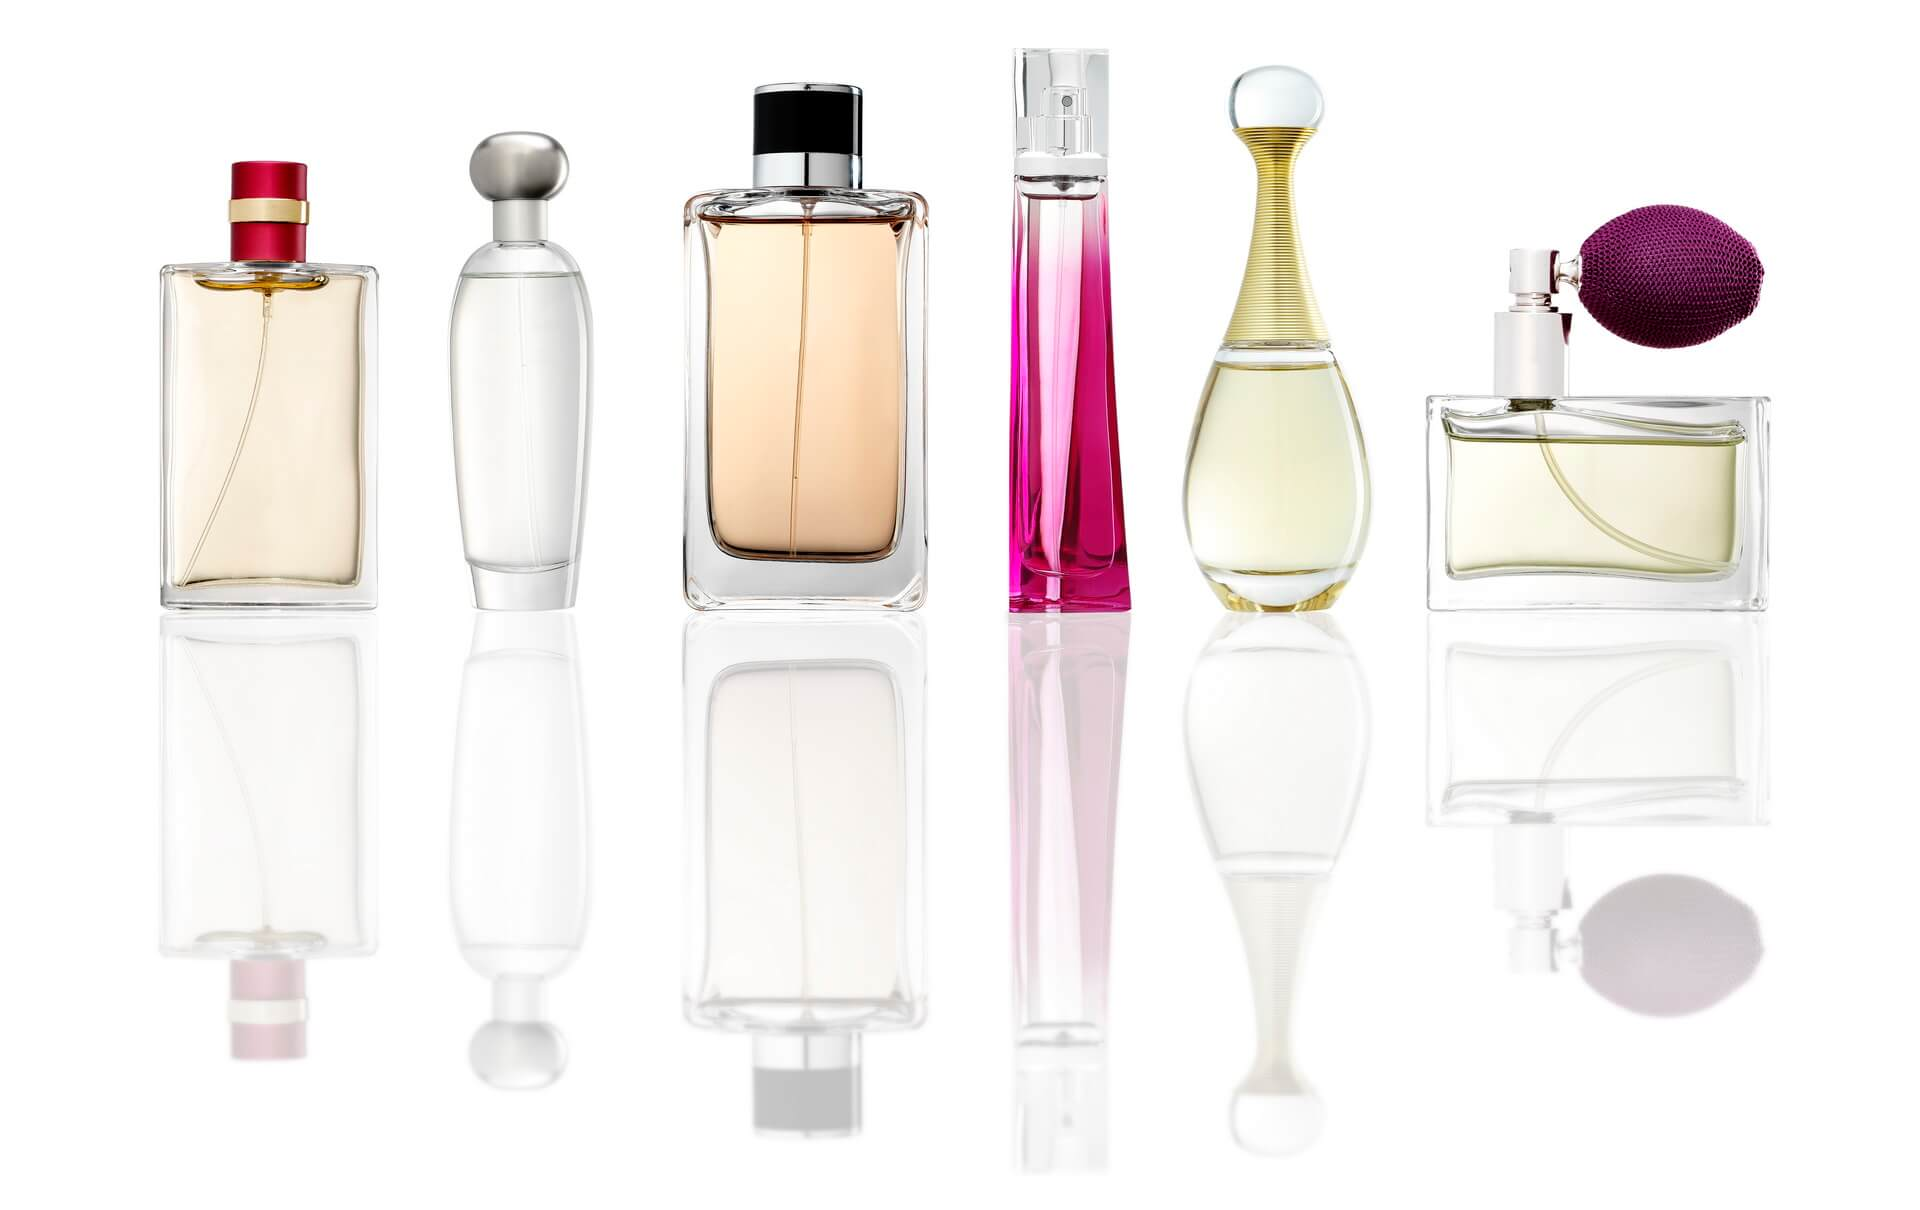 One Perfume, Four Ways to Wear It